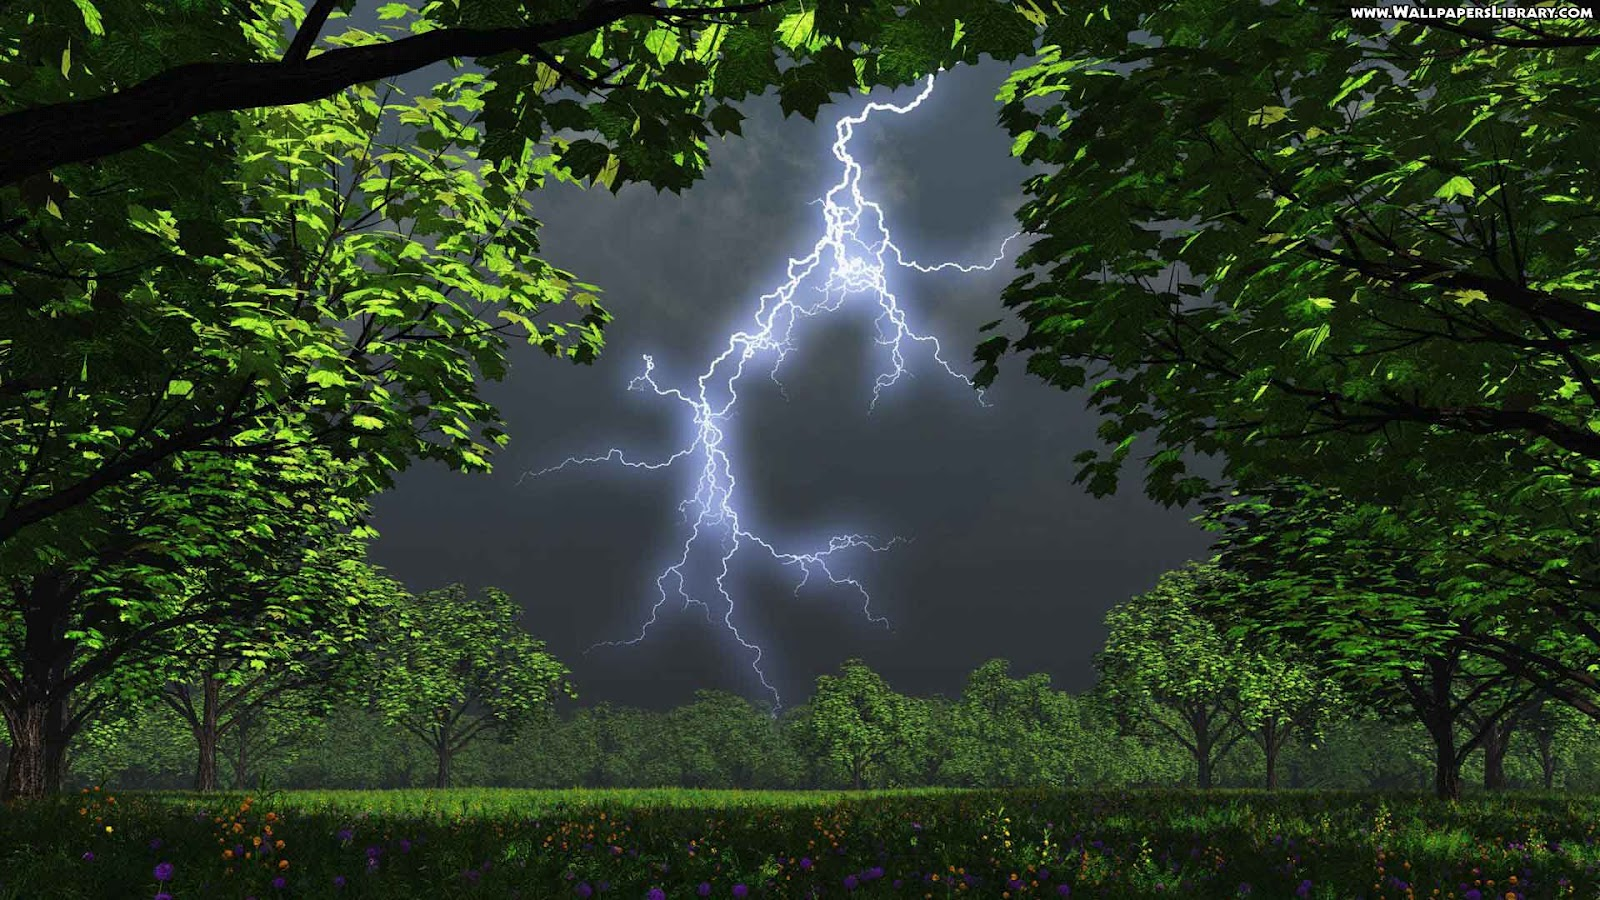 http://3.bp.blogspot.com/-jJNslGSIvA0/T40-lmwjBxI/AAAAAAAABiU/VInYbq9xWXQ/s1600/hd-desktop-wallpaper-nature-framing-lightning-images.jpg